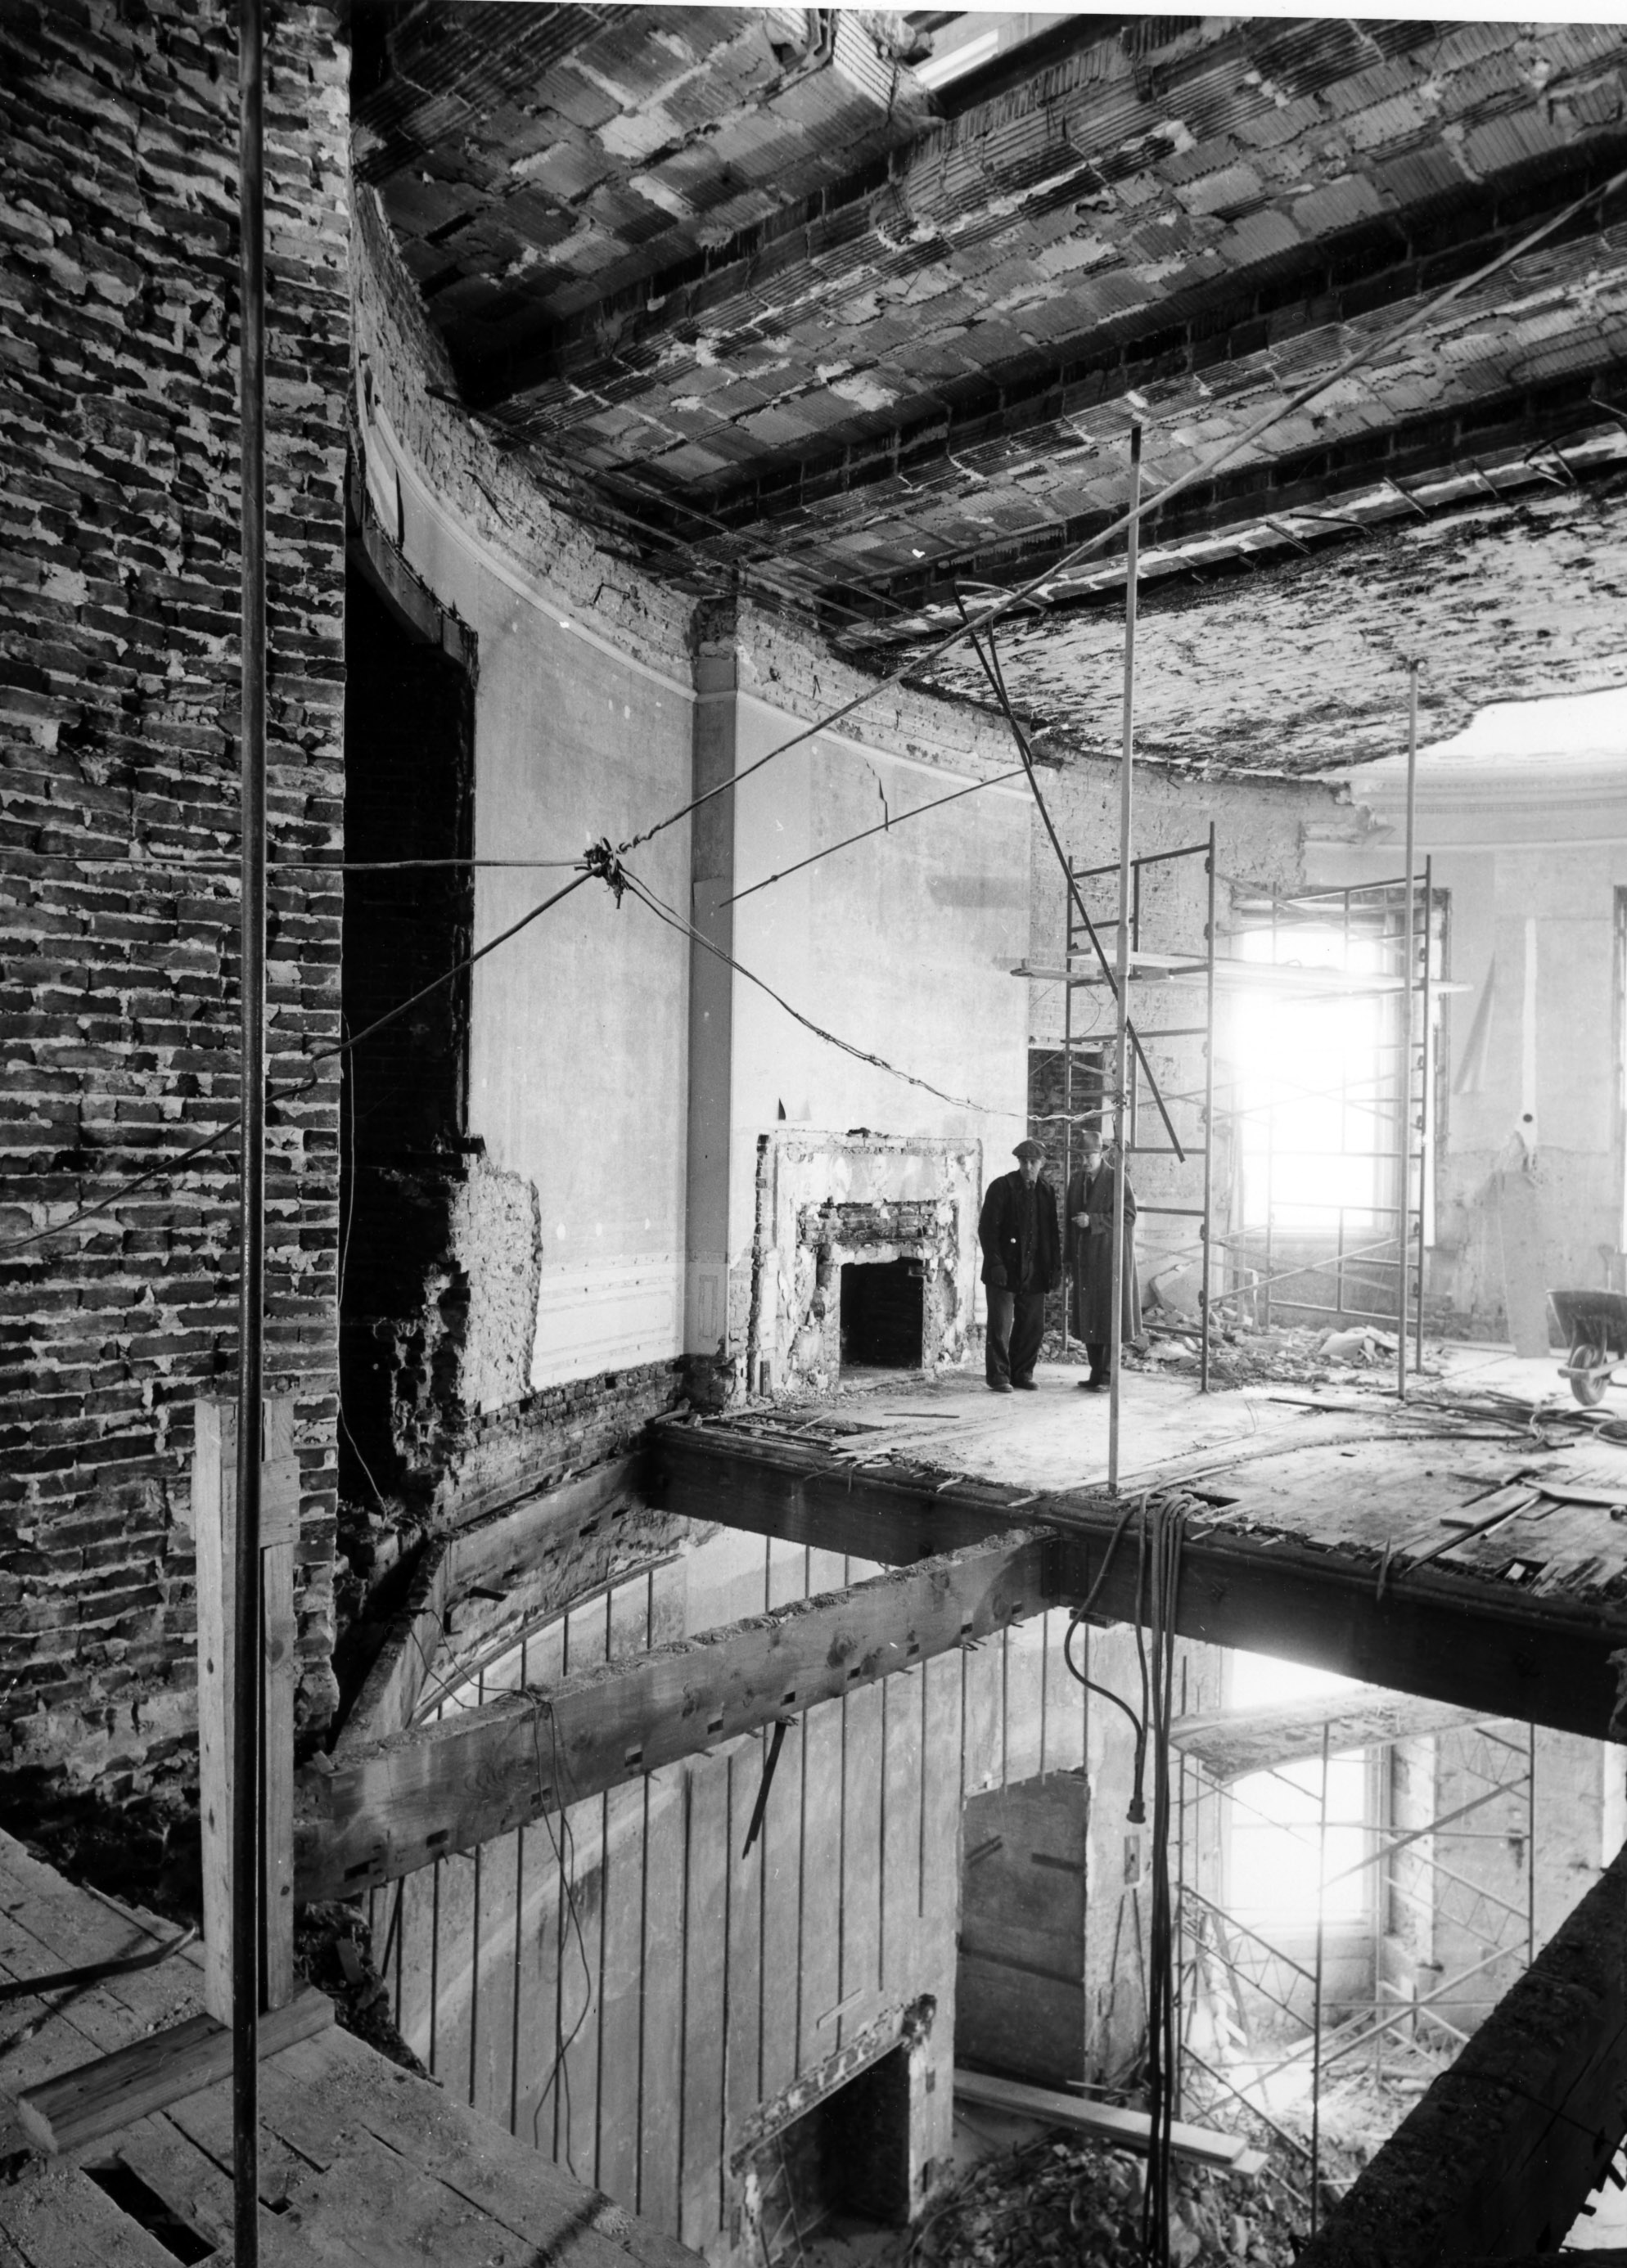 Two unidentified men stand in what remains of the second floor Oval Study above the Blue Room on March 9, 1950. The north wall and part of the floor have been removed for the installation of steel shoring columns. Photo from the holdings of the National Archives and Records Administration, cataloged under the National Archives Identifier (NAID) 6982095.